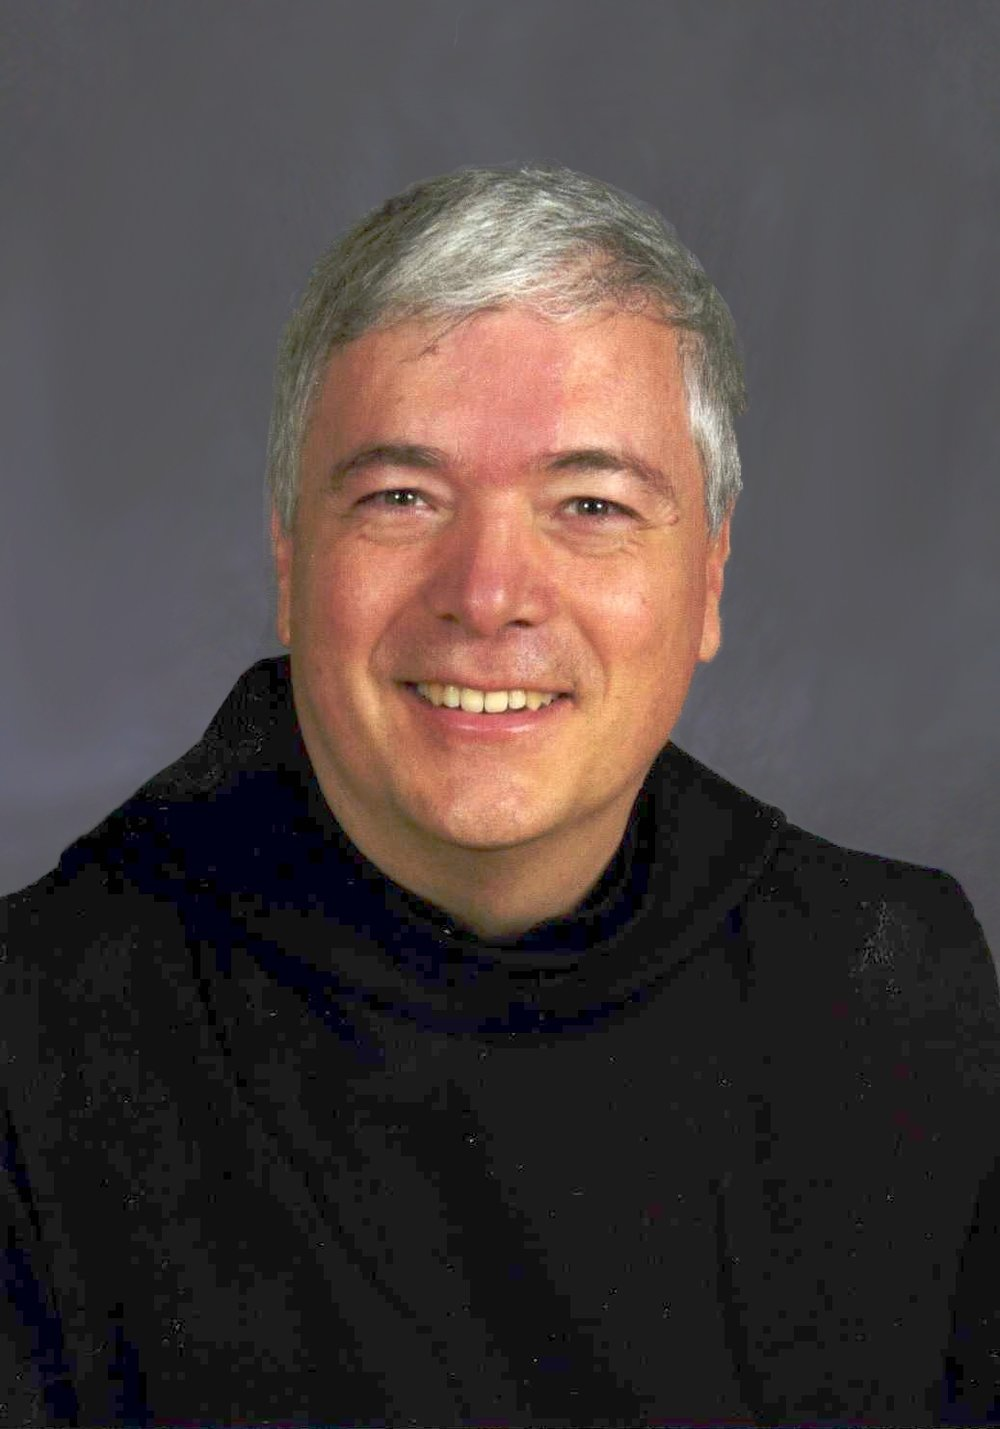 BR. EFRAIN ROSADO, OSB Theology Teacher, John's Preparatory School; Latino ministries in central Minnesota B.A. Civil Engineering, 1992; M.A. Monastic Studies,Saint John's University School of Theology and Seminary; M.Div Saint John's University School of Theology and Seminary